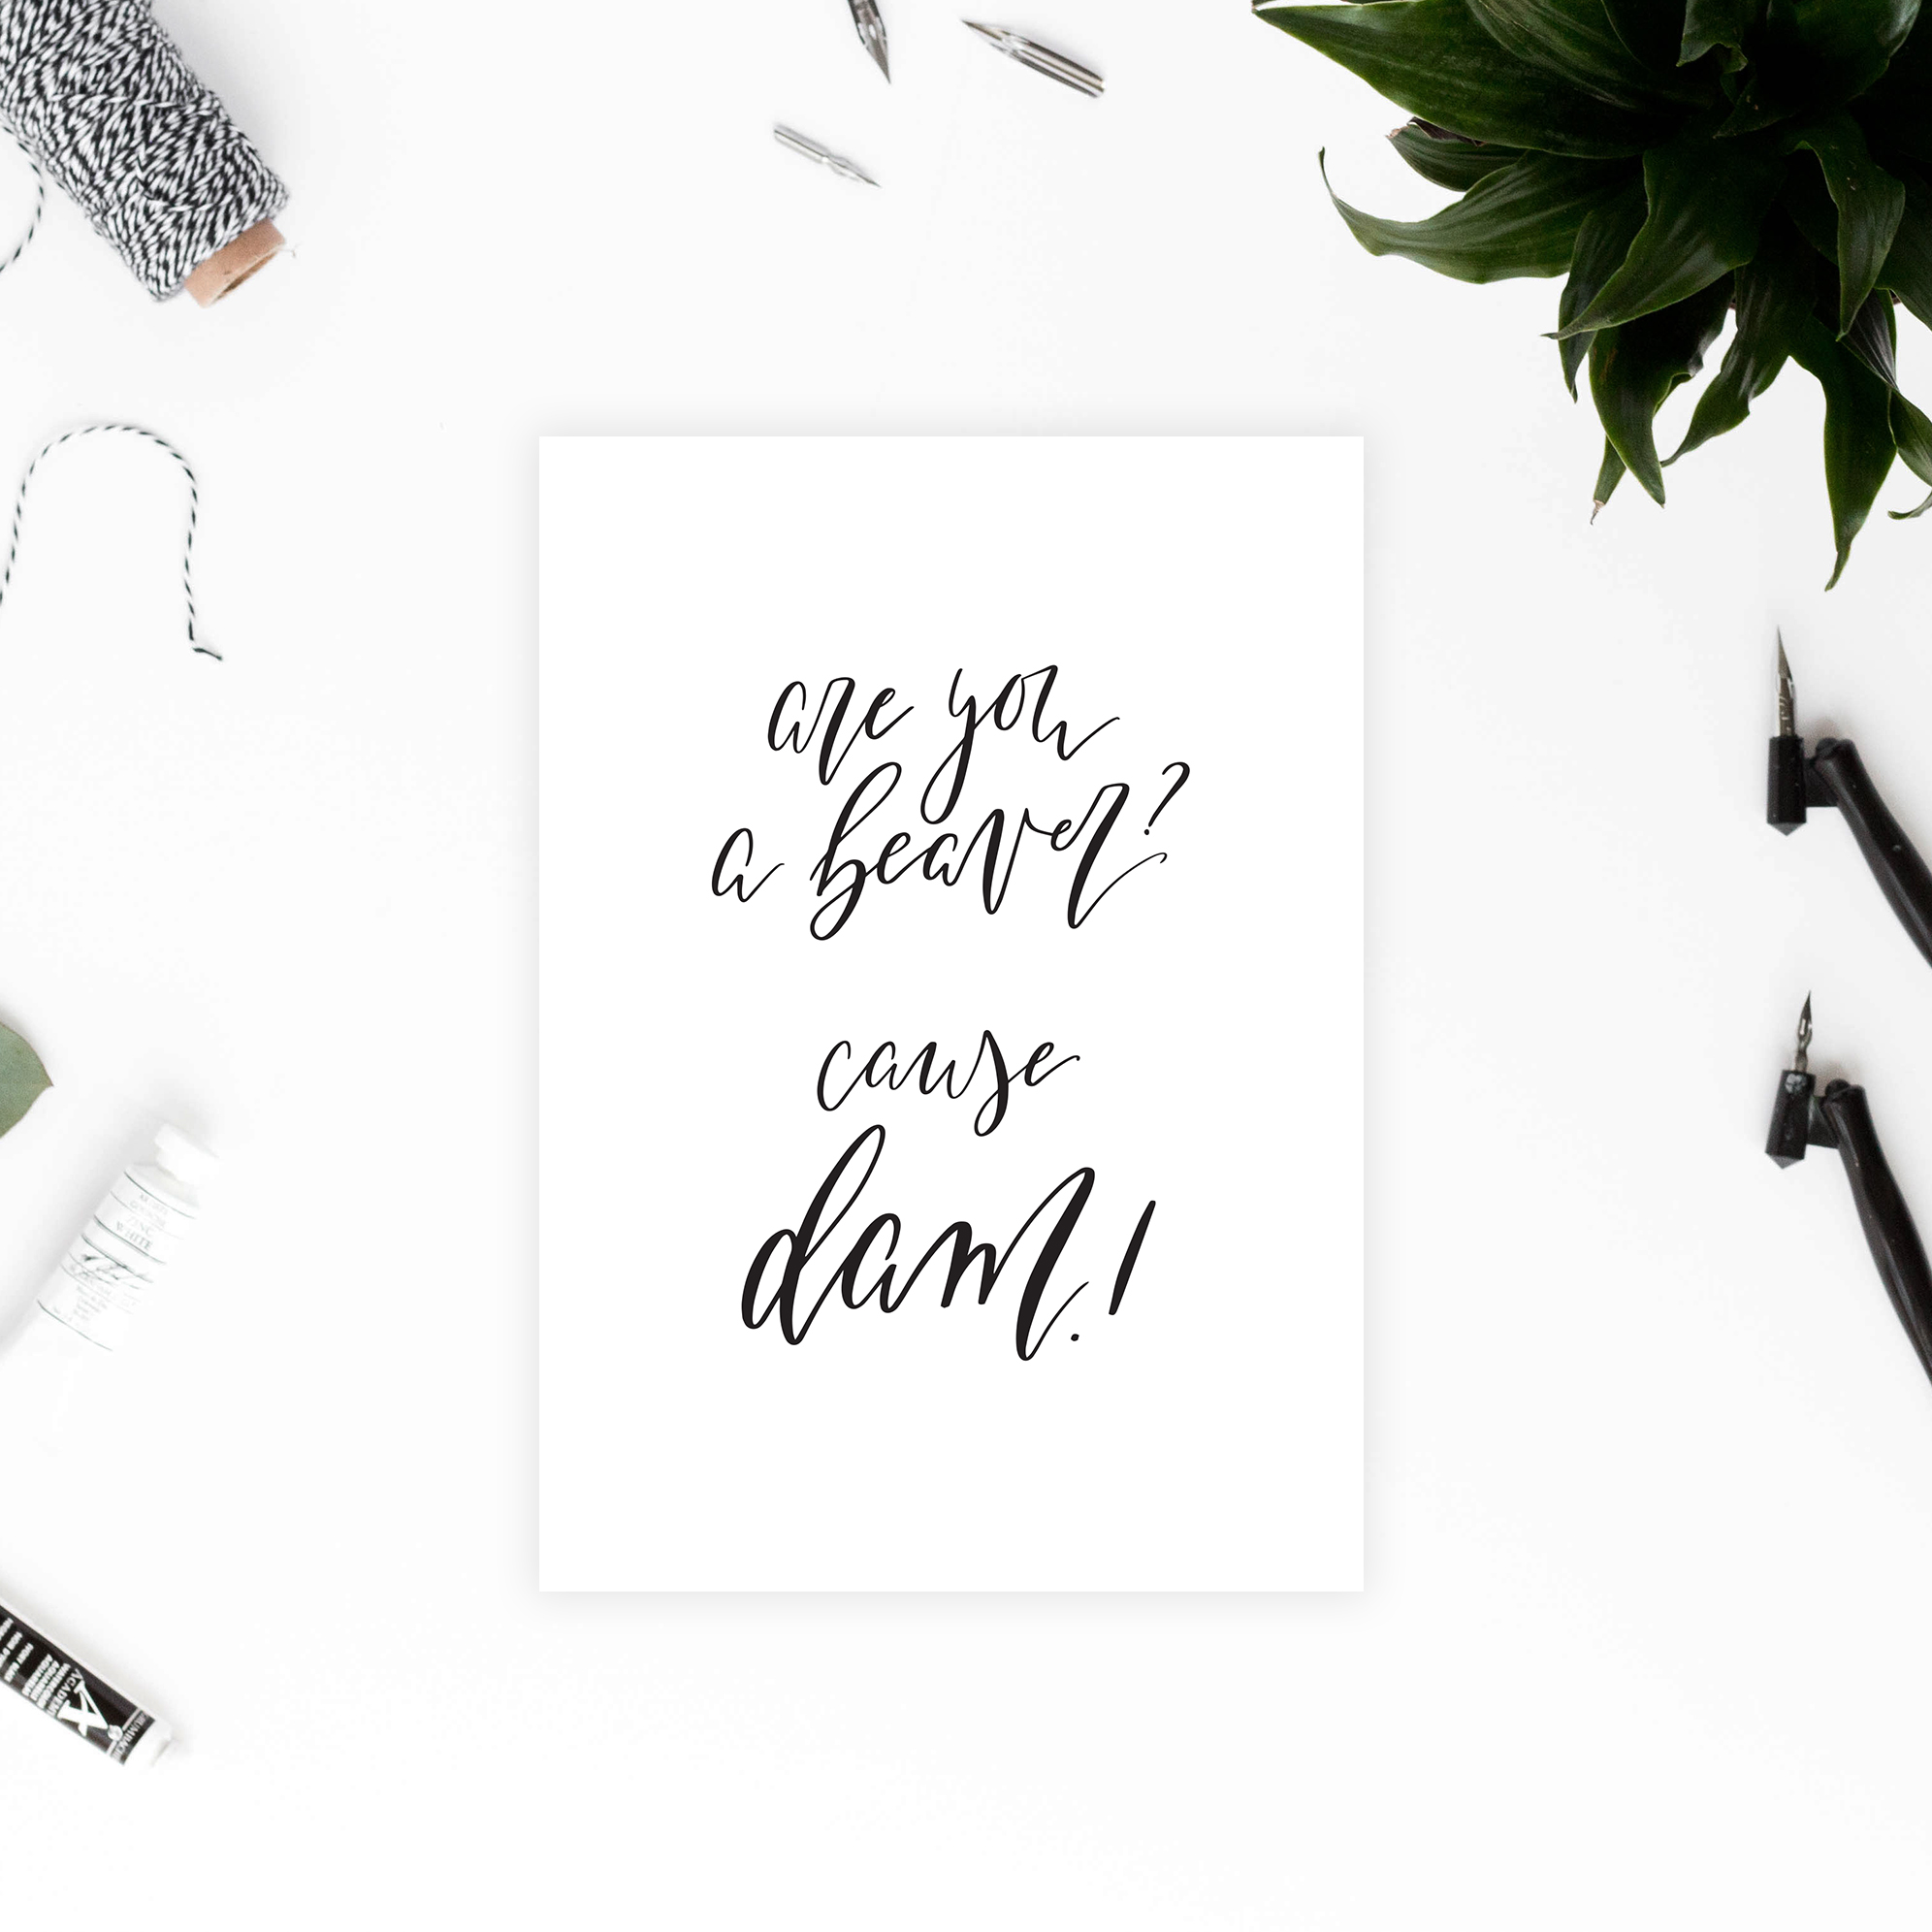 Are You A Beaver? Cause Dam! - Printable Valentines/Anniversary Card -  Fun and Punny Greeting Card featuring Modern Calligraphy - True North Paper Co